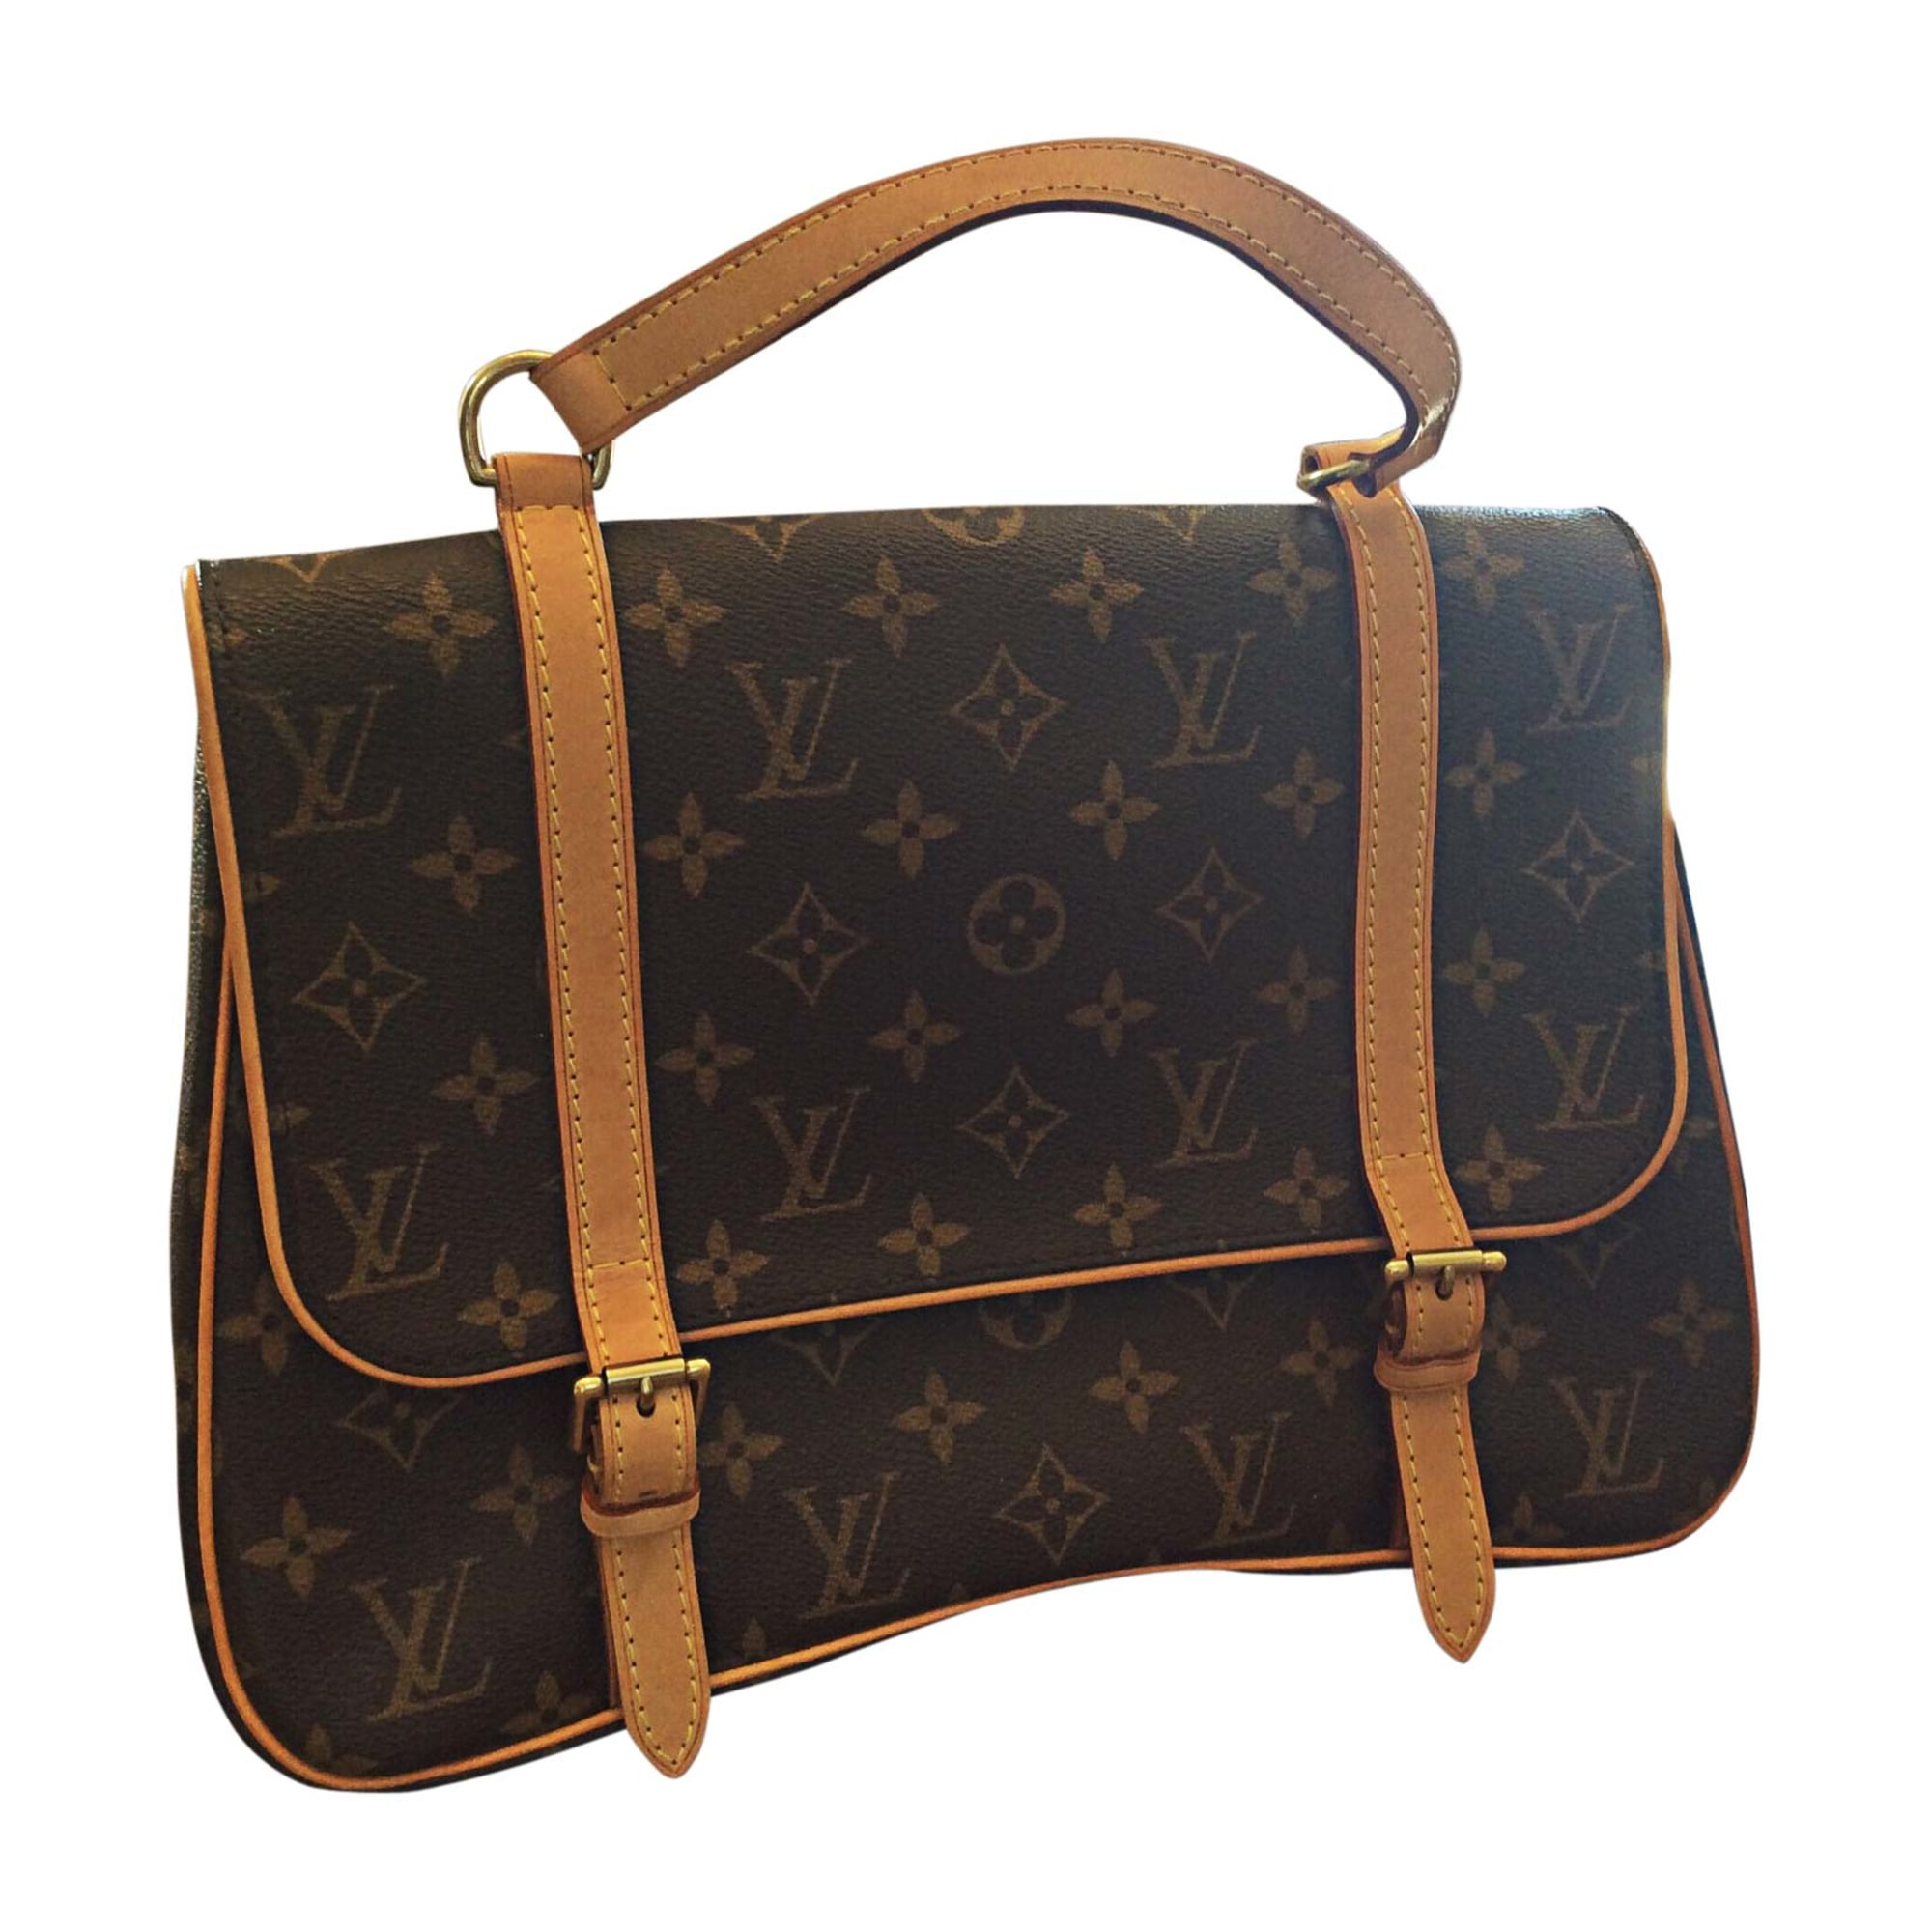 Sac à main en cuir LOUIS VUITTON Marron